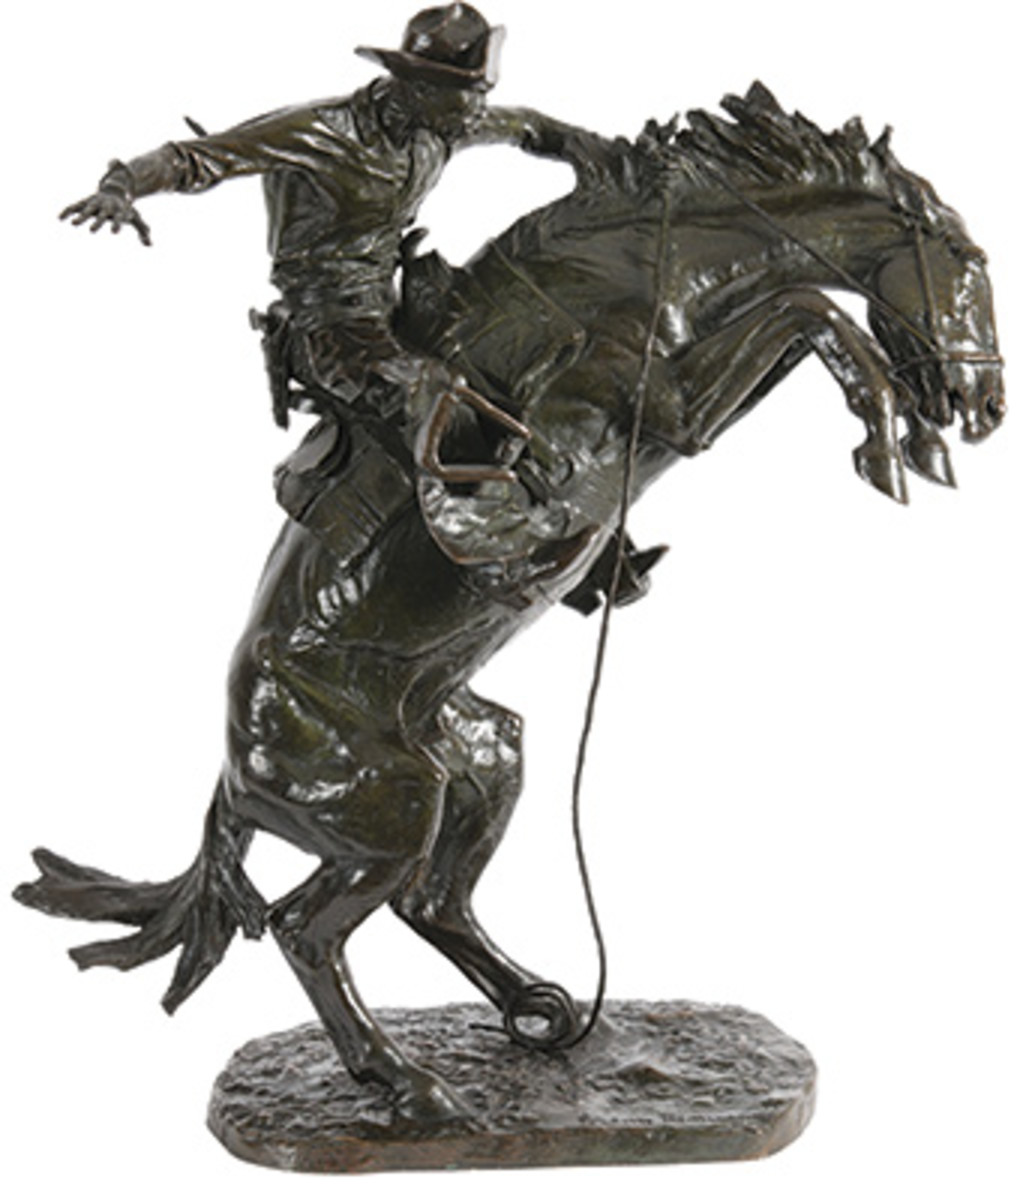 Frederic Remington's TheBronco Bustersoared to a final selling price of $615,000 and took top lot. All images courtesy of Heritage Auctions